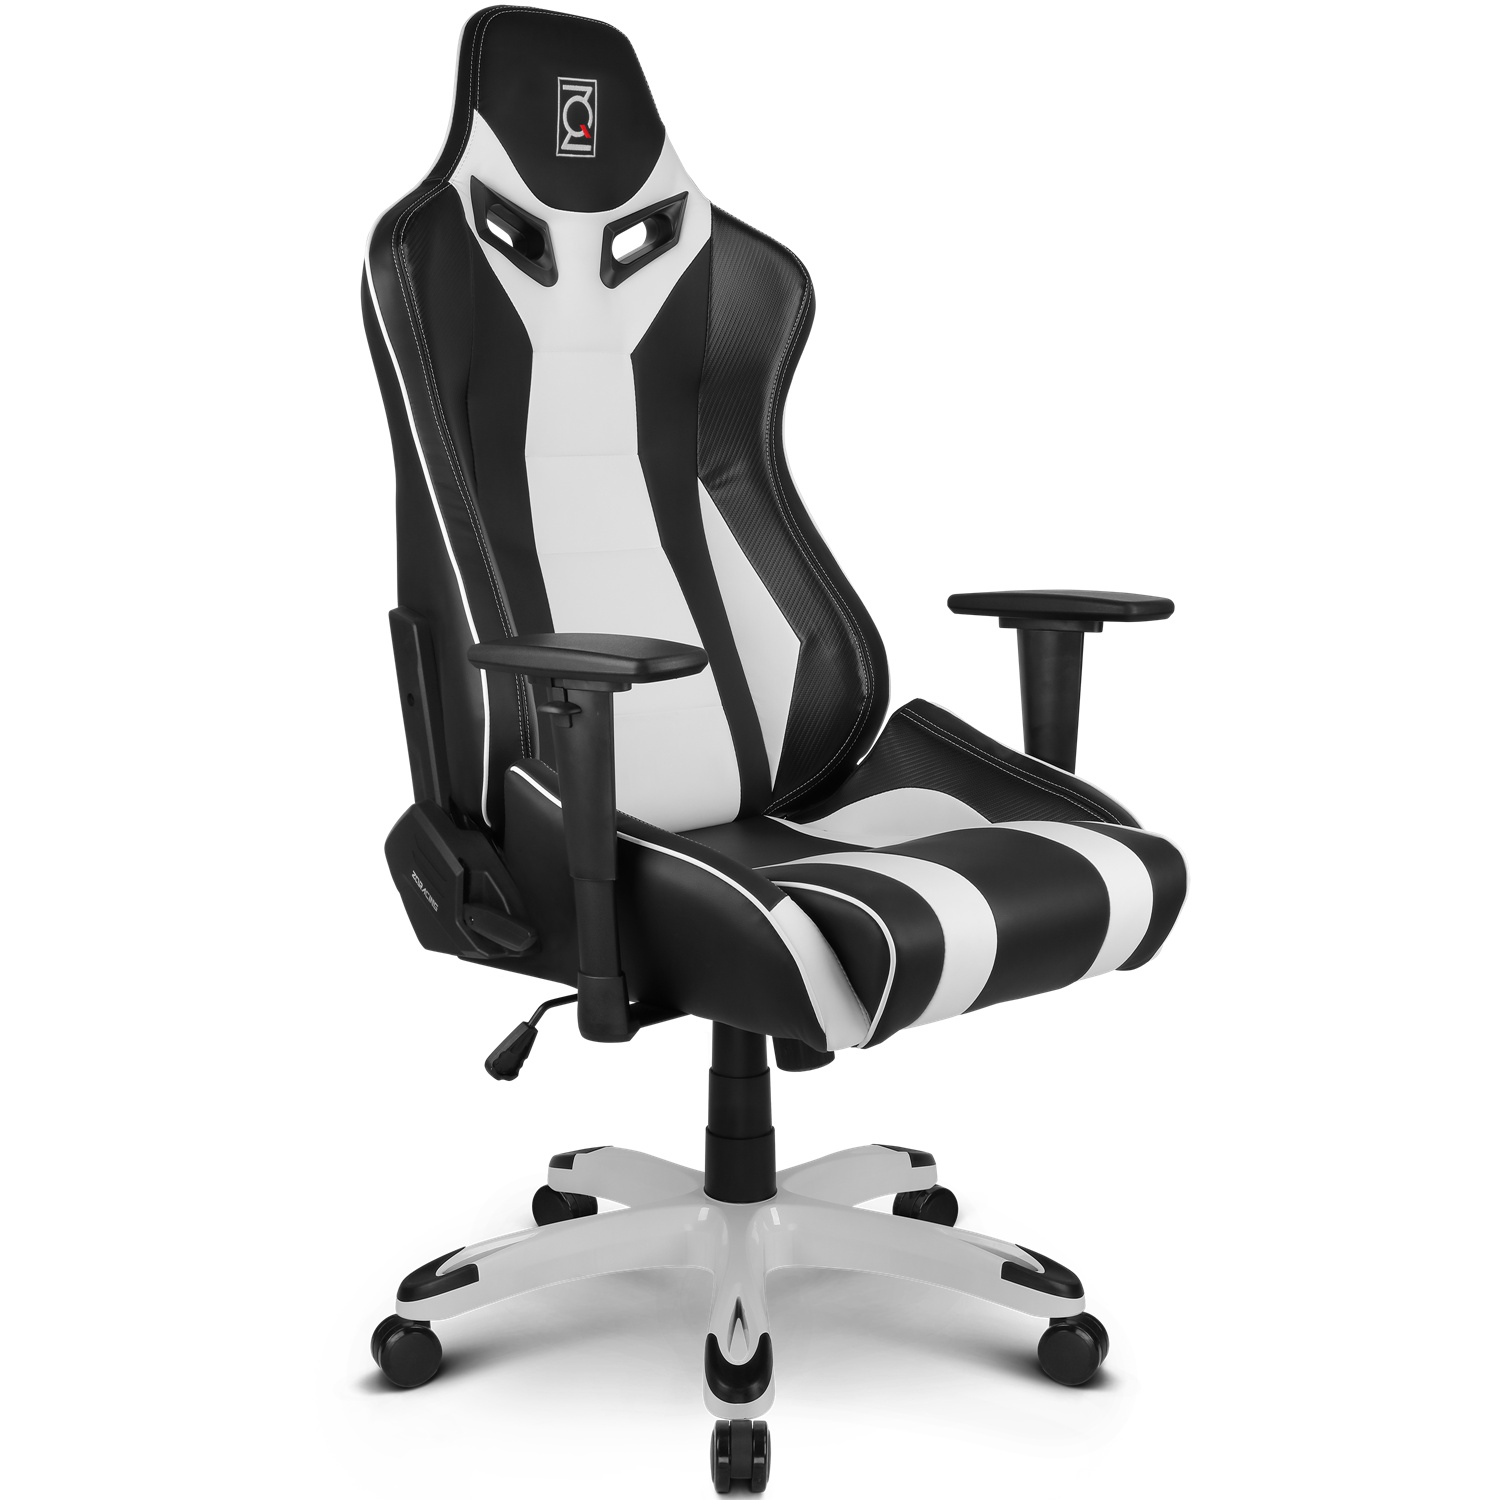 choice height best office backrest gaming collections cushions products leather and support w adjustable chair blue